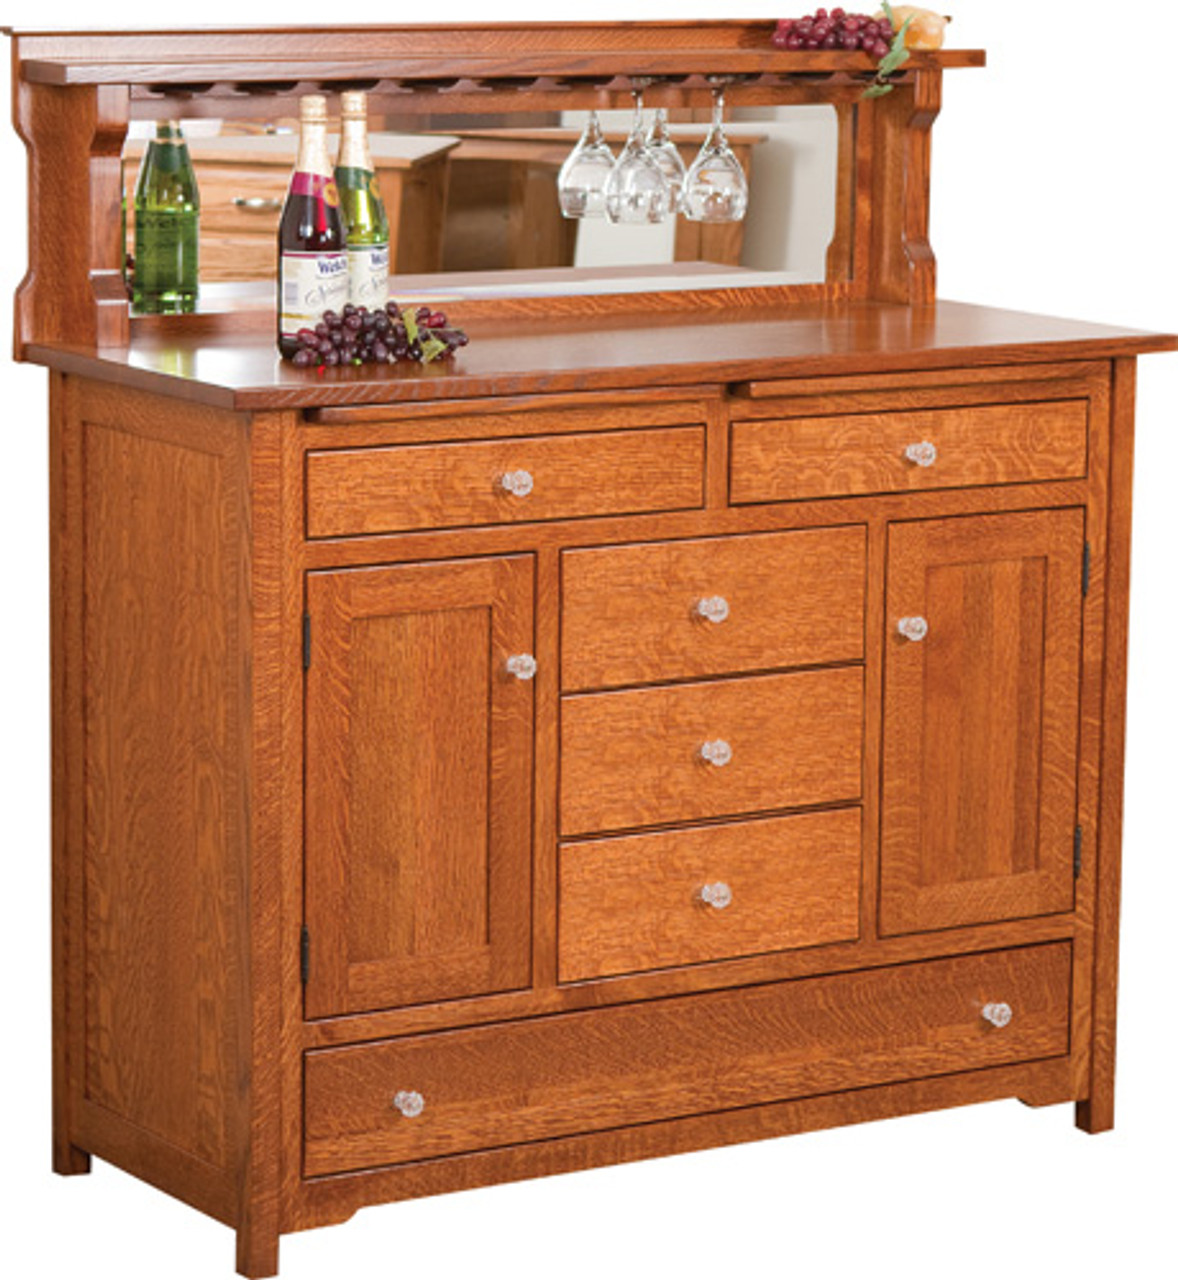 HC Buffet with Drawers